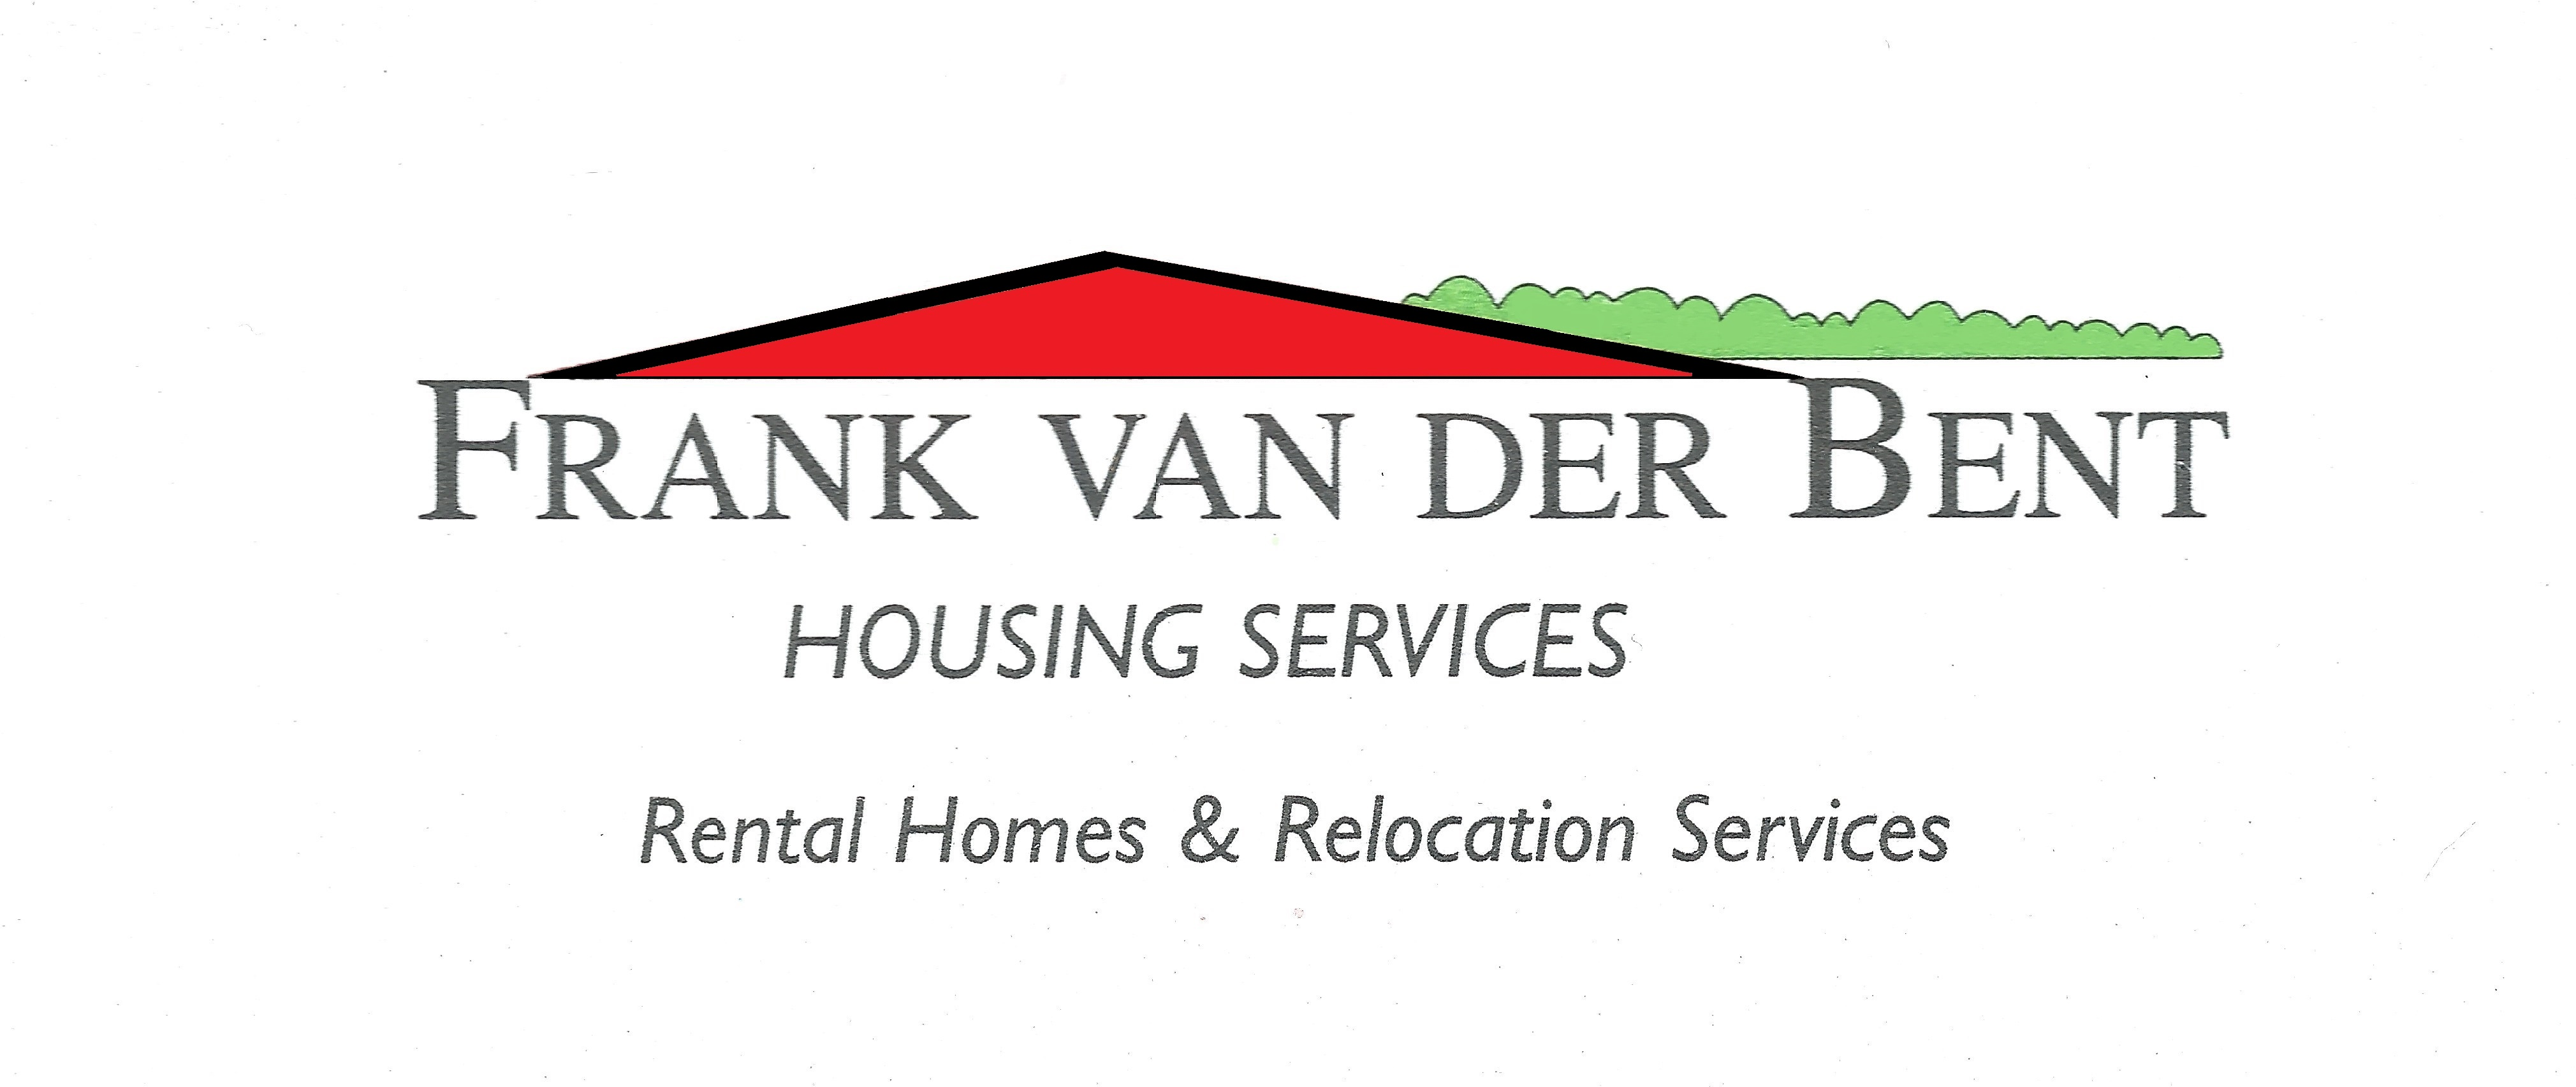 Logo Frank van der Bent Housing Services